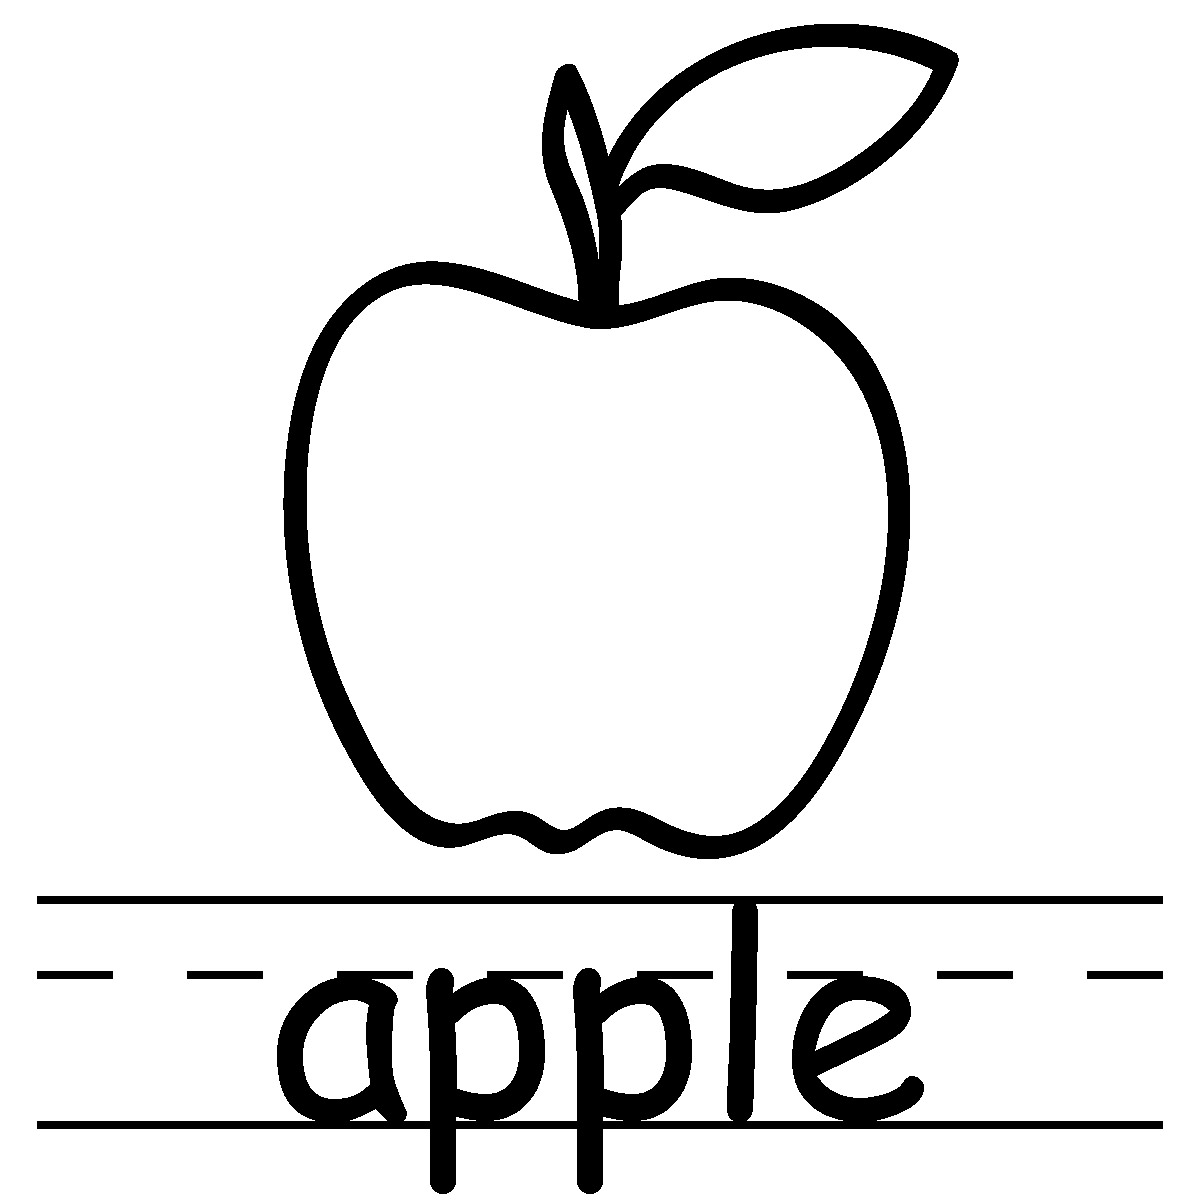 1200x1200 Apple Black And White Image Of Teacher Clipart Black And White